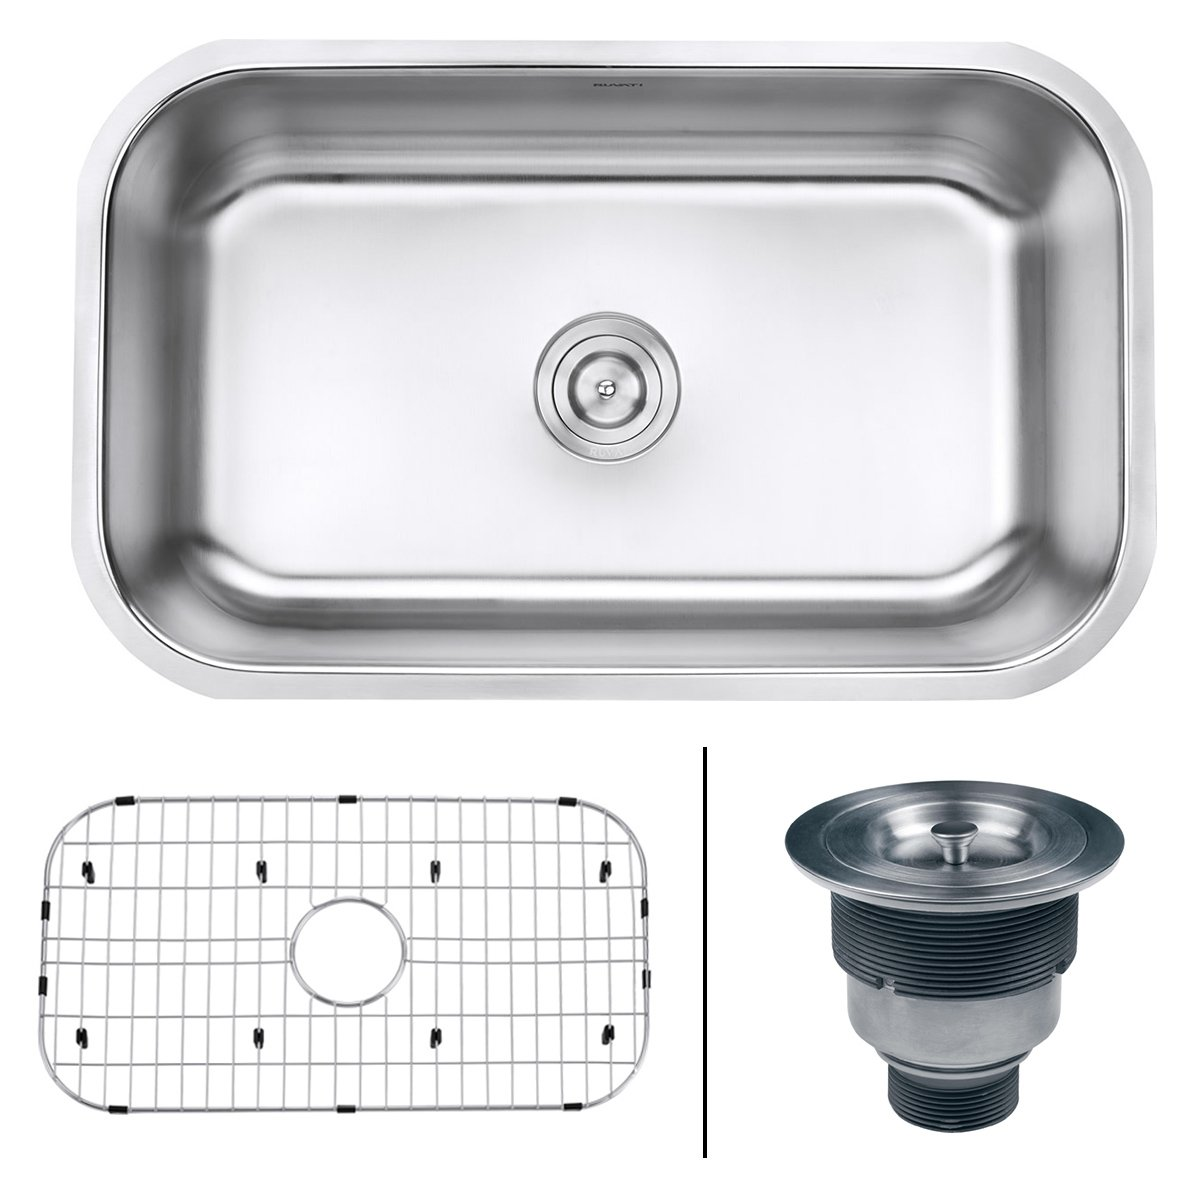 Ruvati 30-inch Undermount 16 Gauge Stainless Steel Kitchen Sink Single Bowl – RVM4250